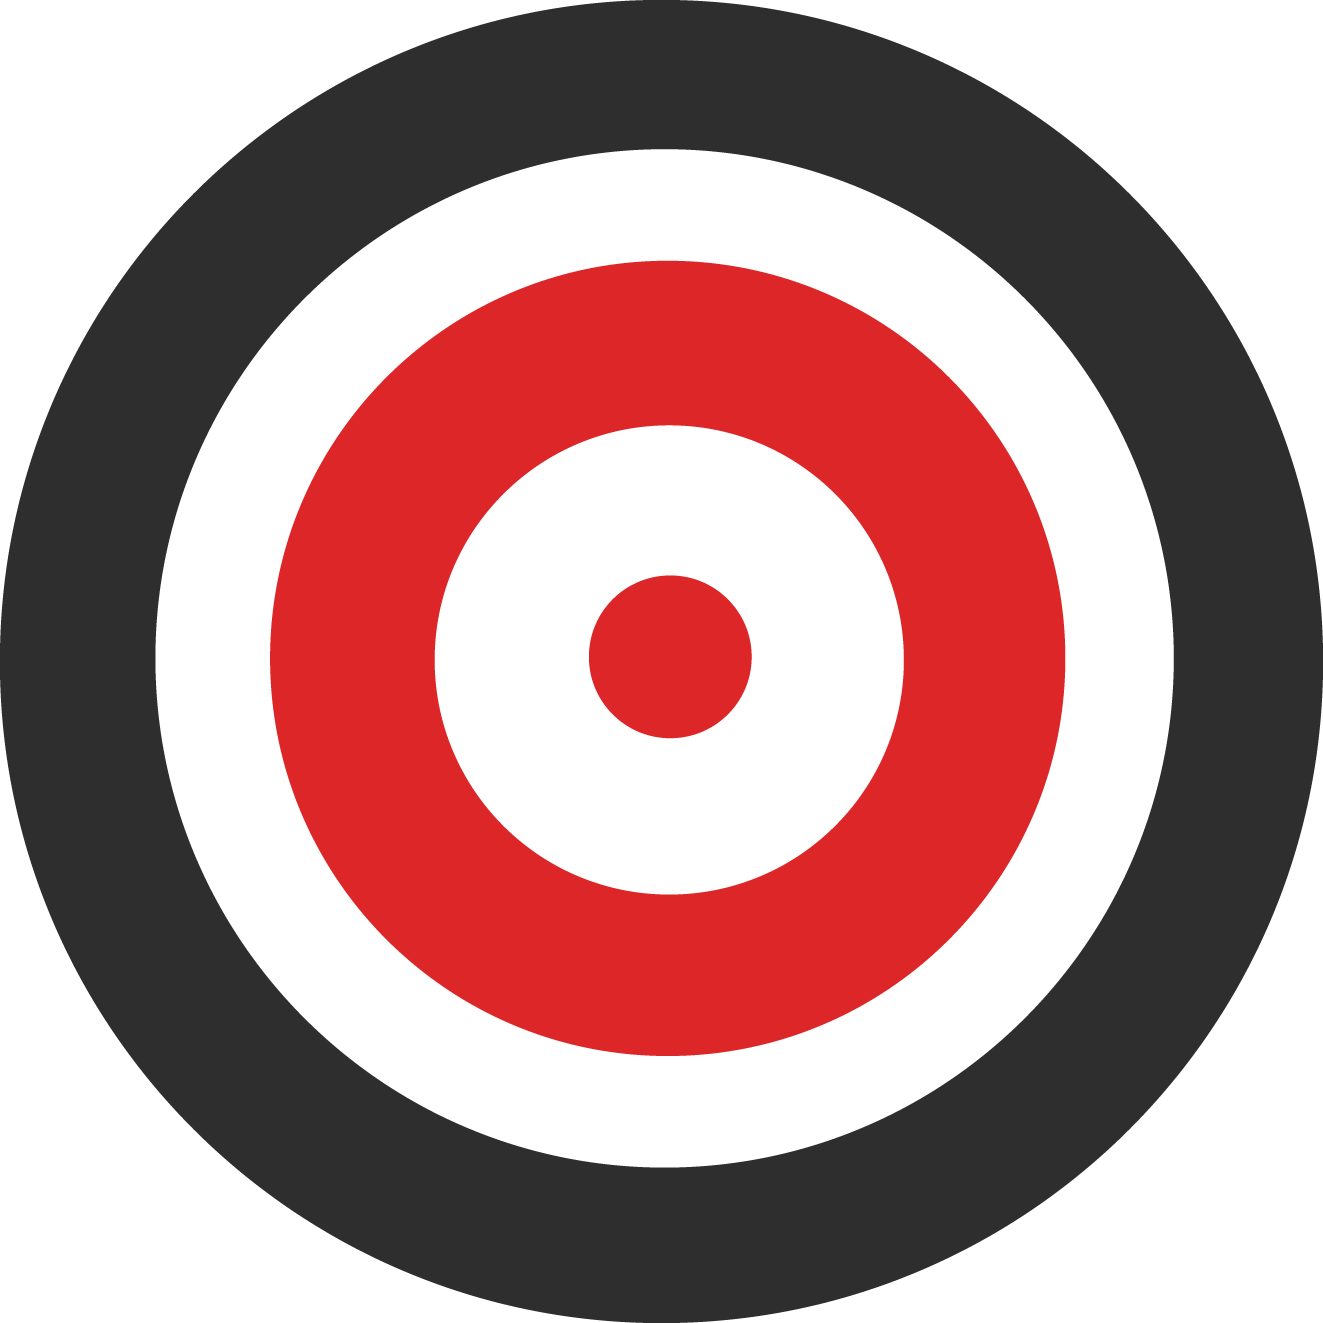 Clipart target symbol clipart royalty free library Clipart target symbol - ClipartFest clipart royalty free library